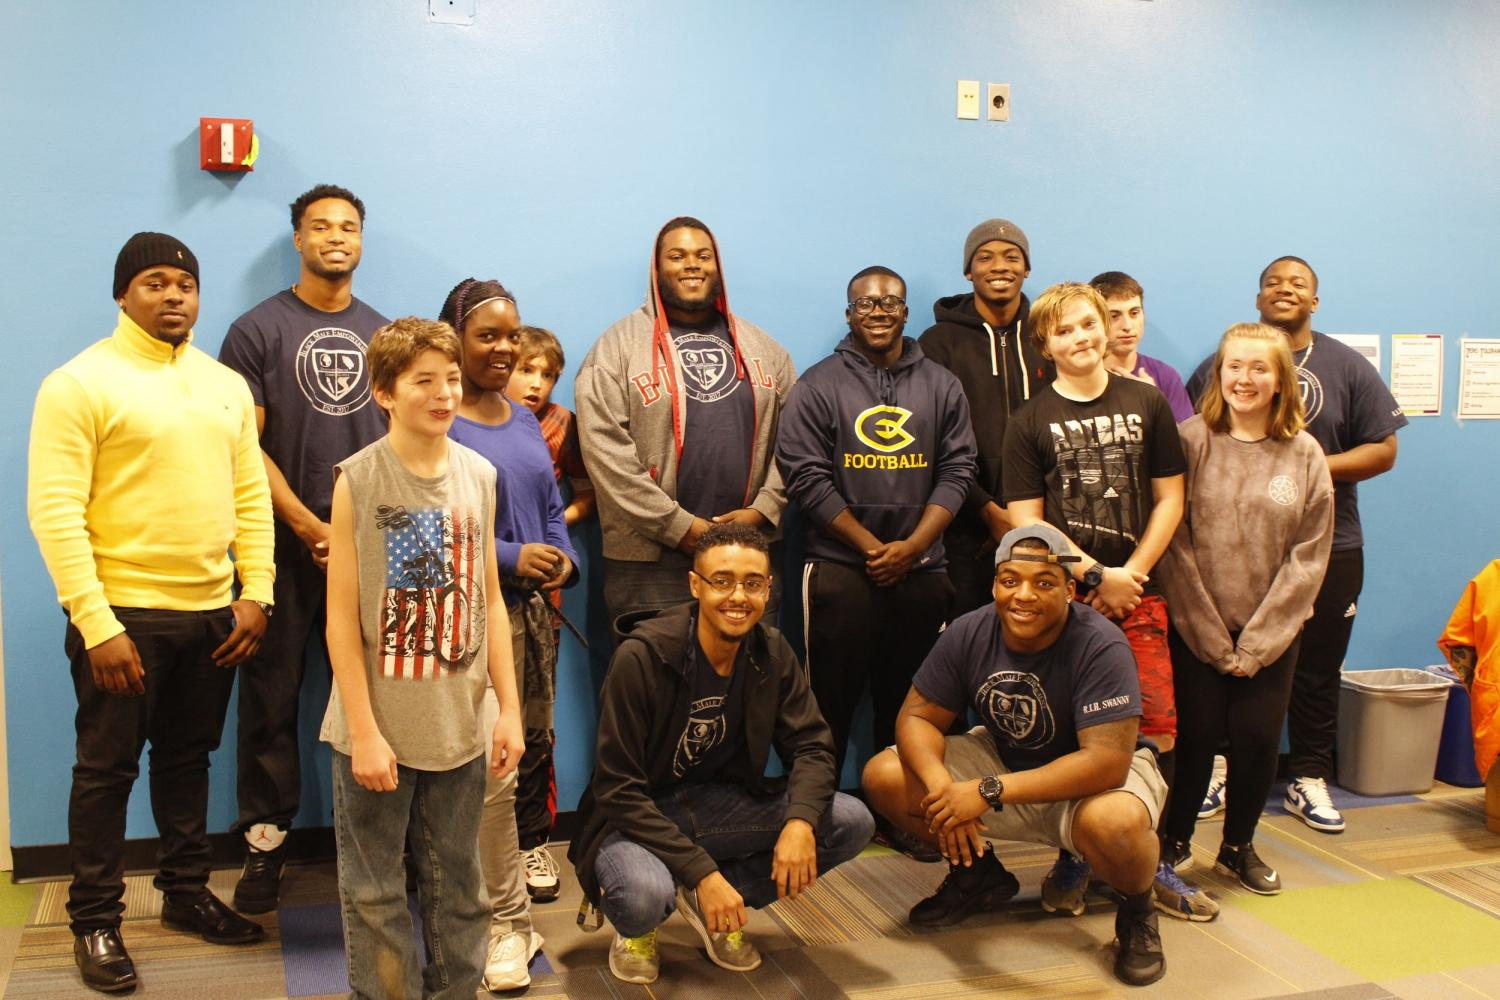 The Black Male Empowerment Group spends the night at the local Boys and Girls Club playing football and spending time with youth. Dennis Beale hopes the group will teach young African Americans skills for a better life.  © 2017 Allison Anhalt